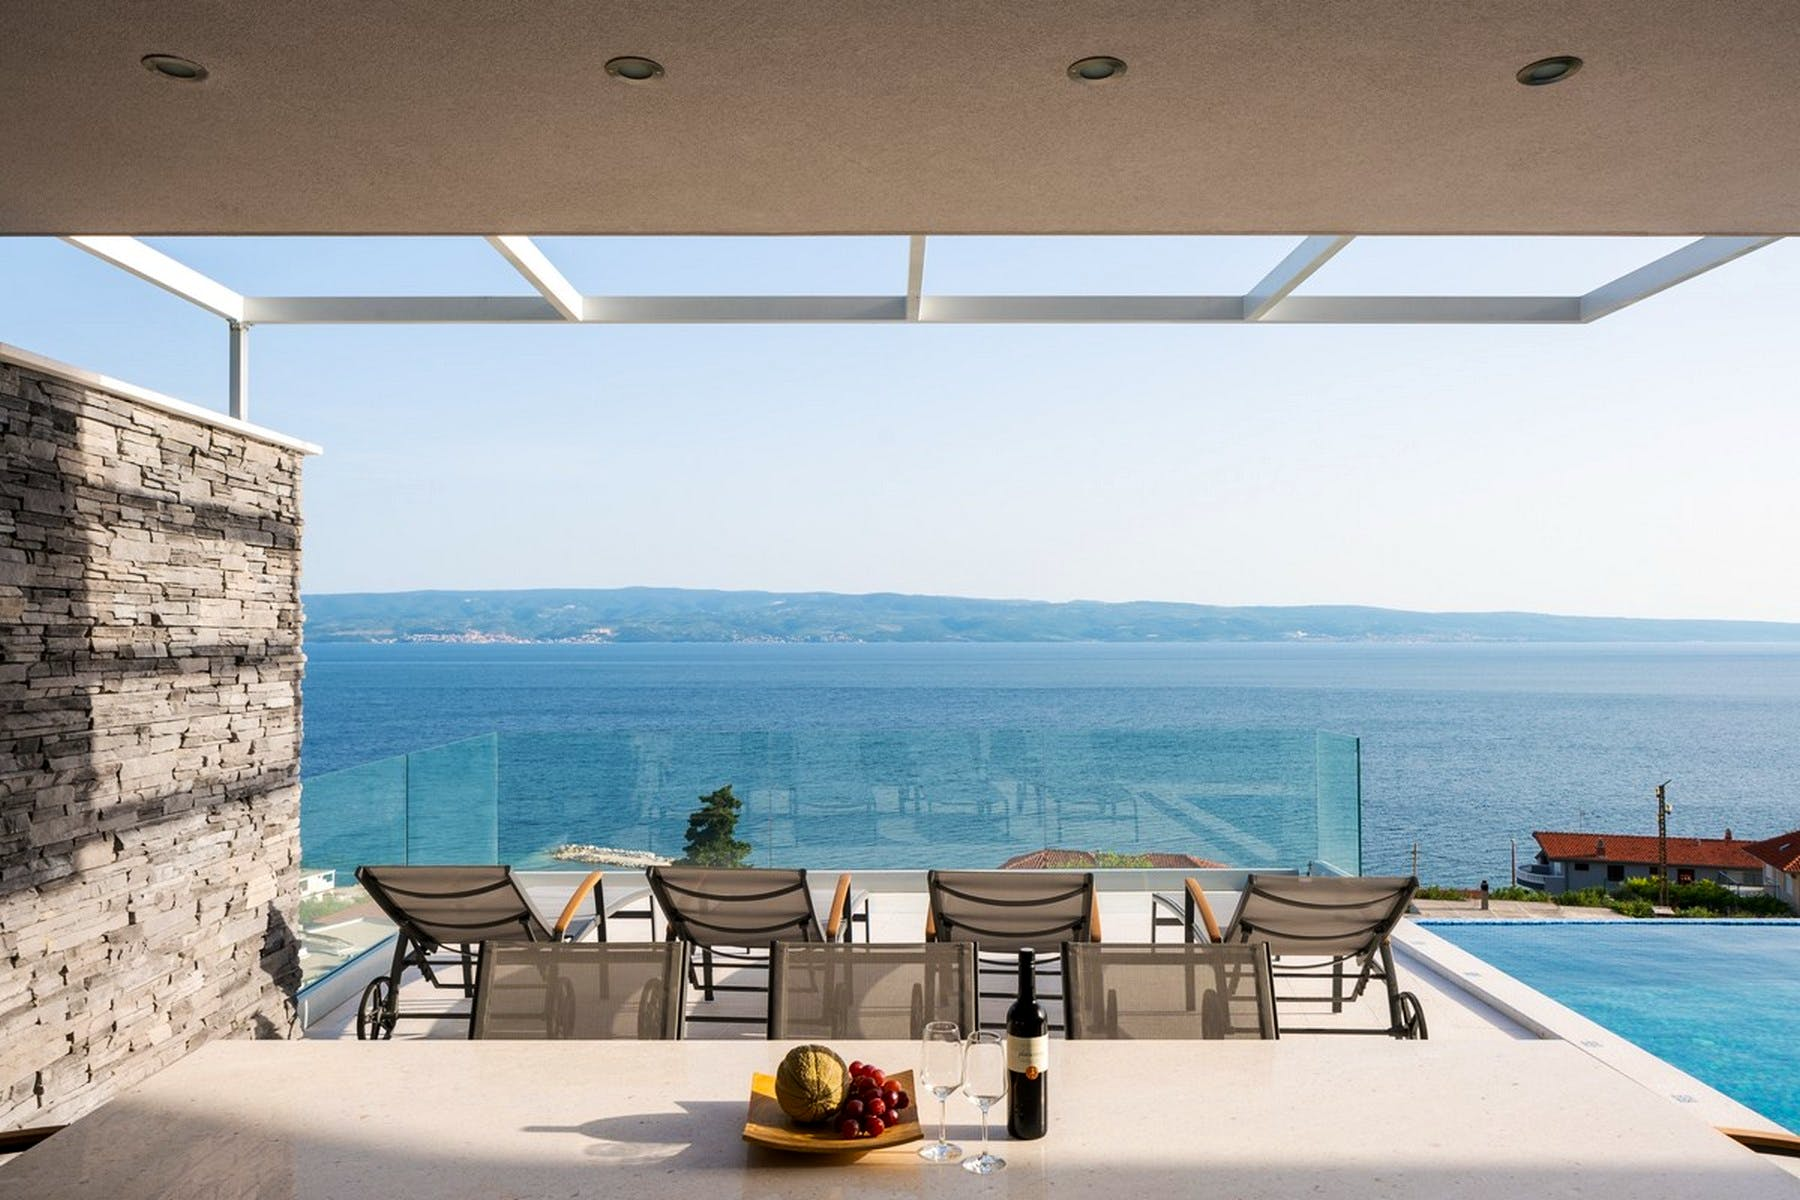 Outdoor sitting area with a seaview